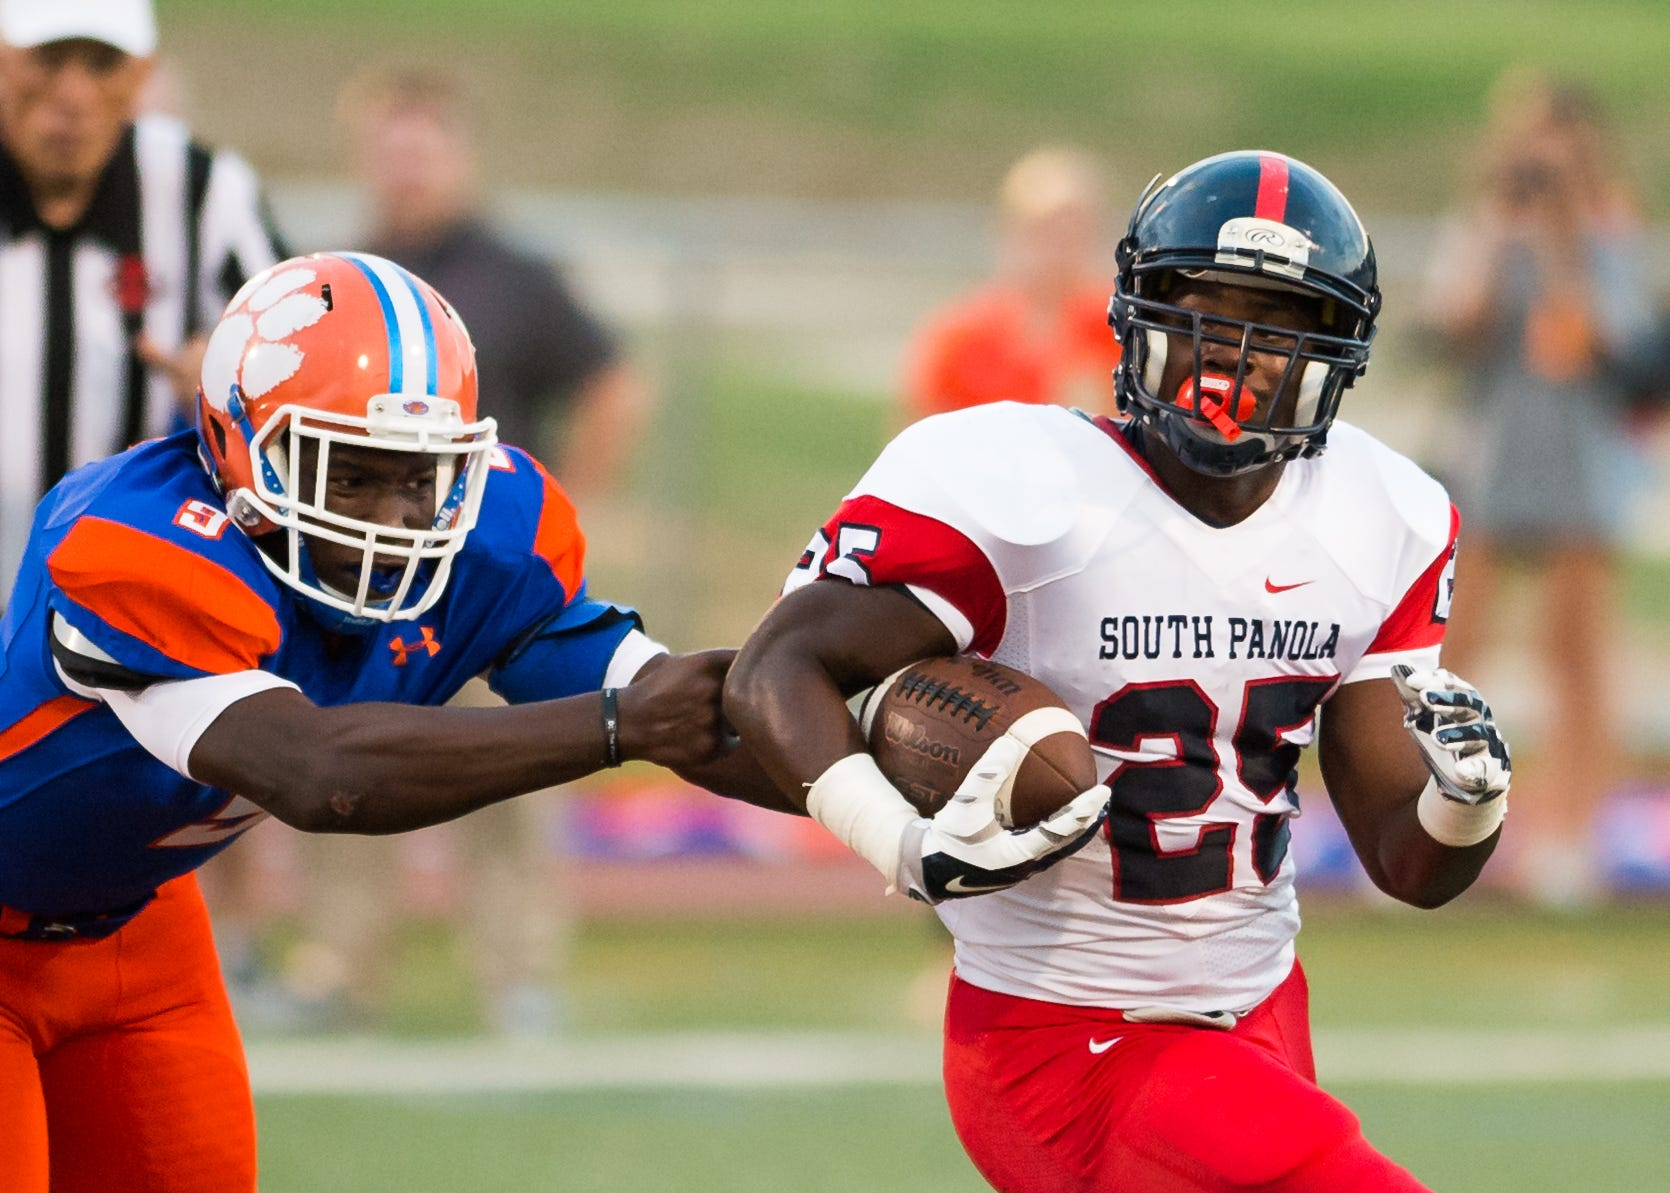 MSPreps: South Panola at Madison Central